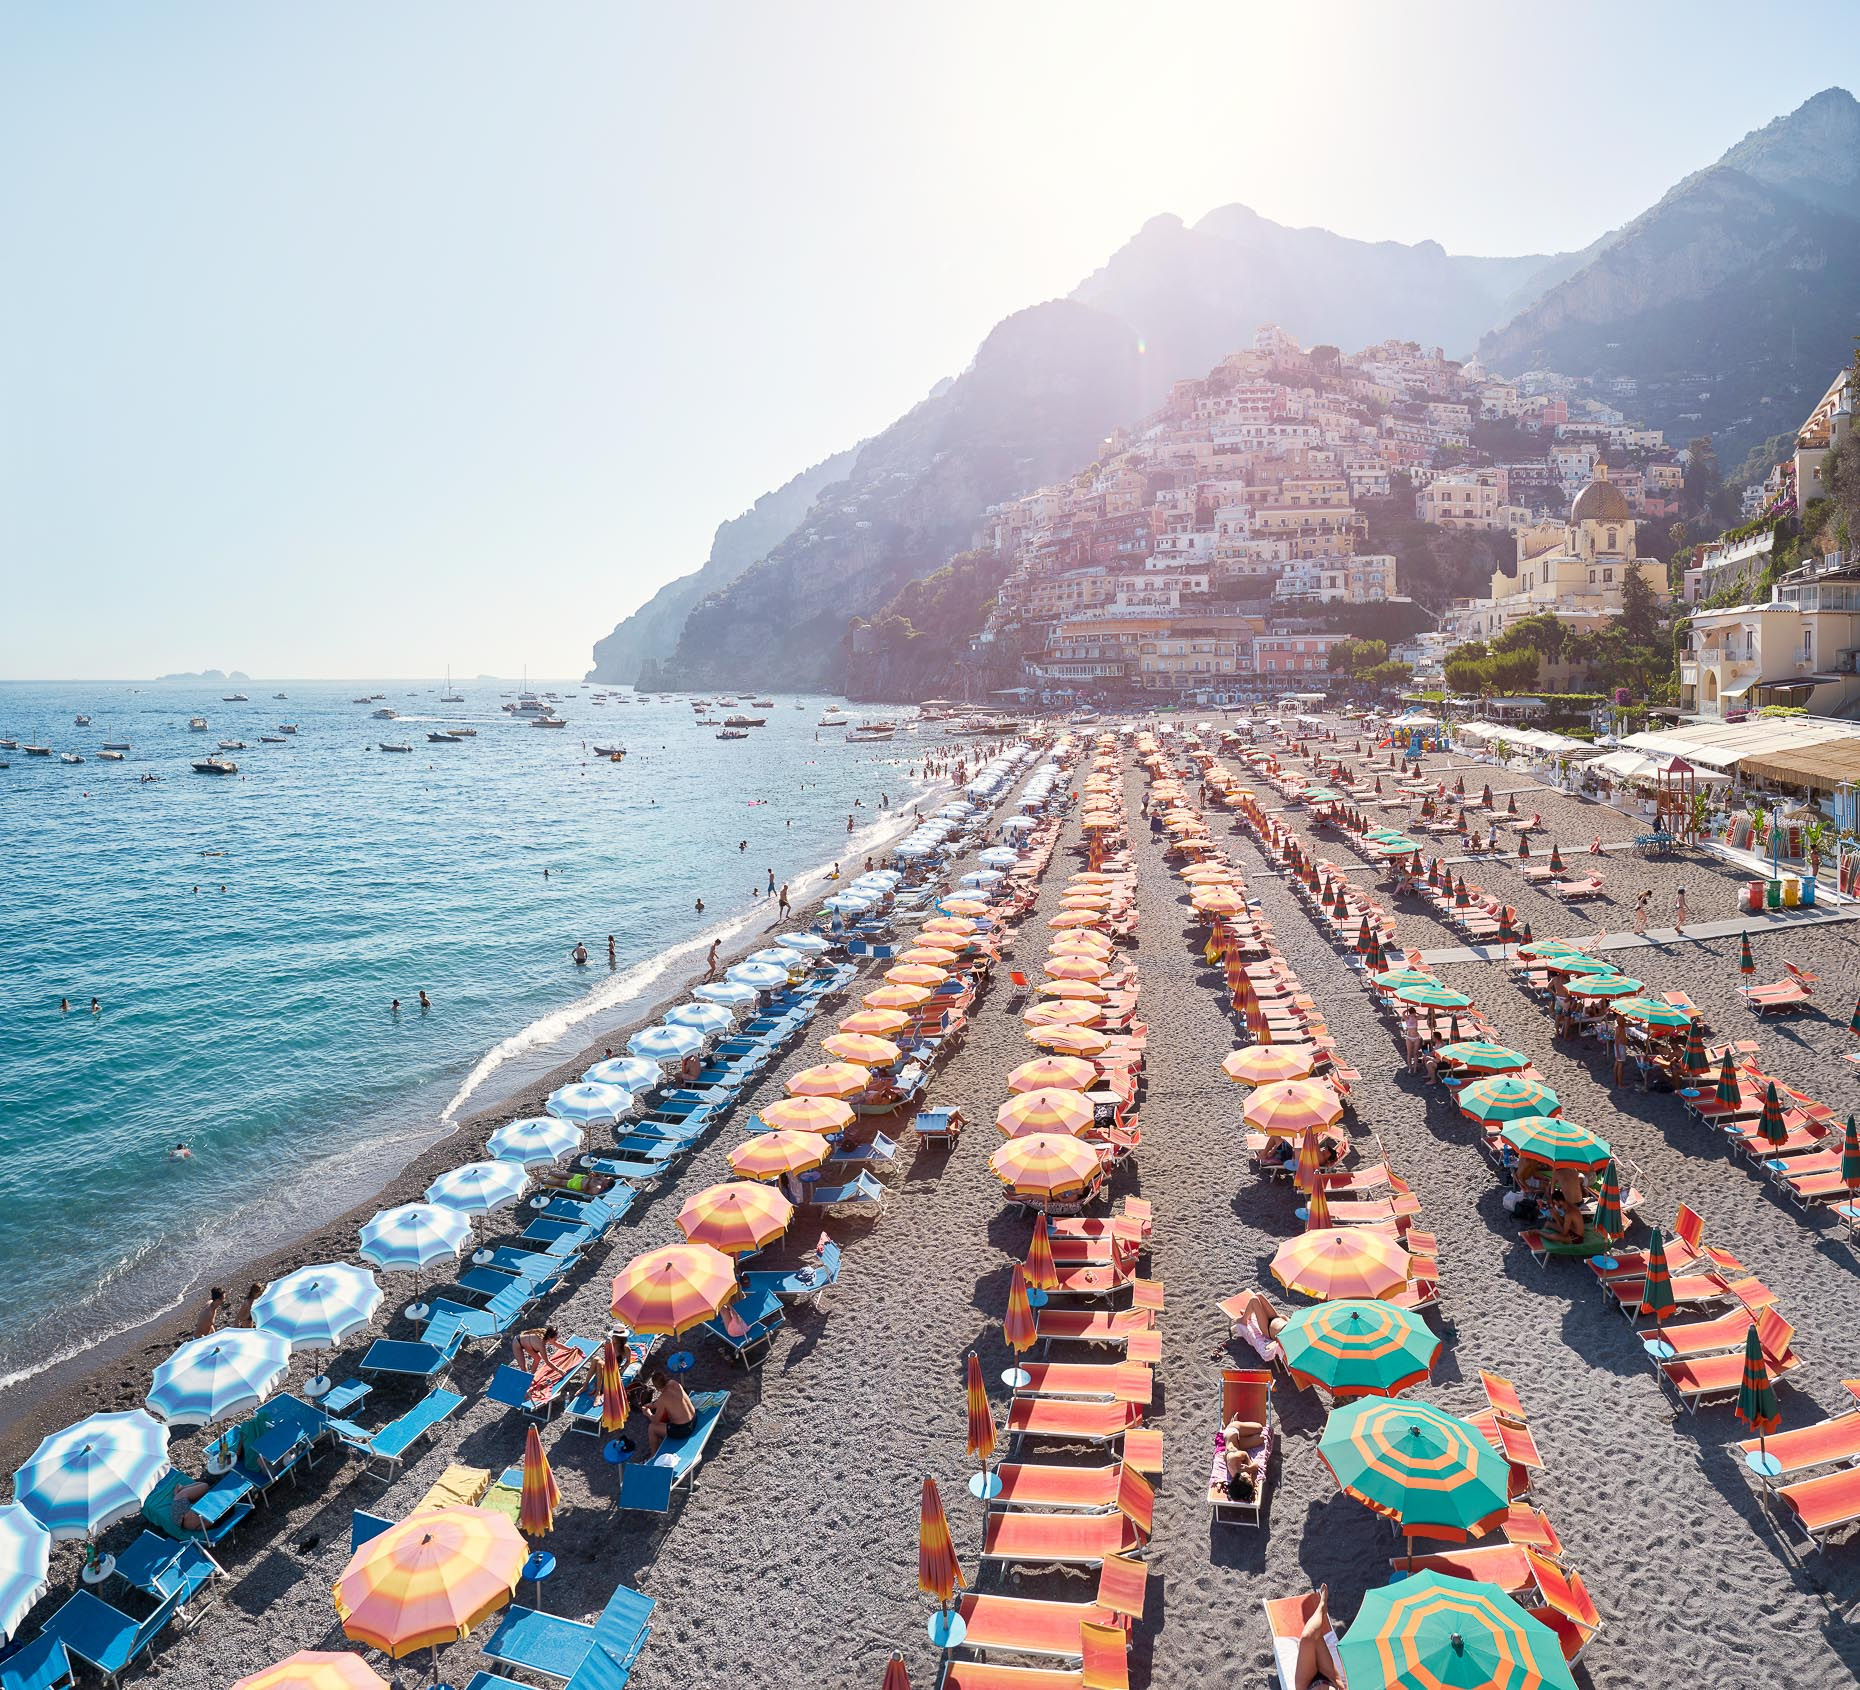 Personal_Italy_positano_Troy_House_DSC07539_Troy_House_DSC07545-7images_0000_Final_TBP-18